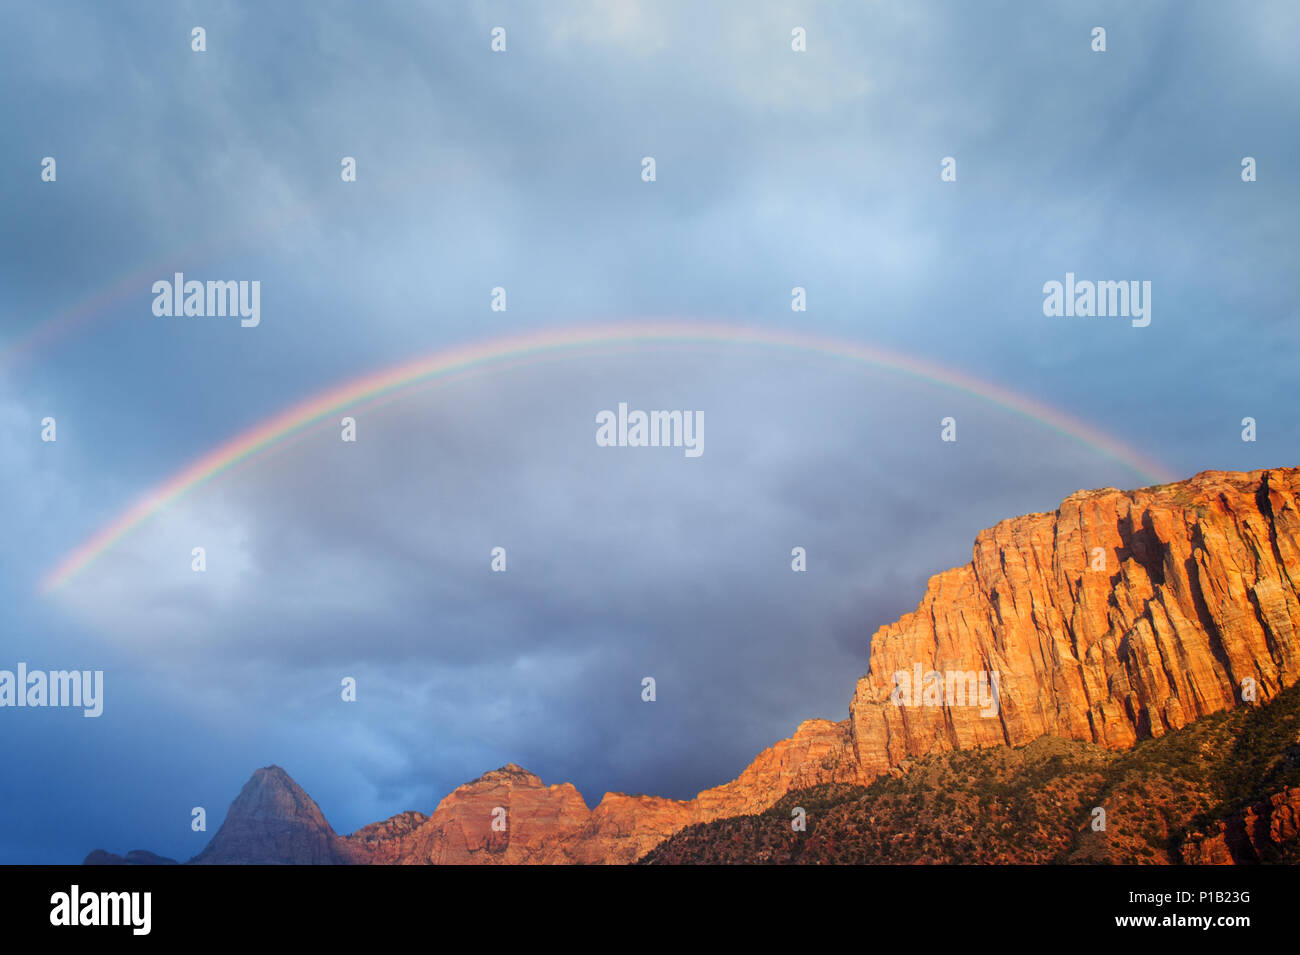 Partial double rainbow over a red rock cliff near Zion National Park, Utah, USA. - Stock Image